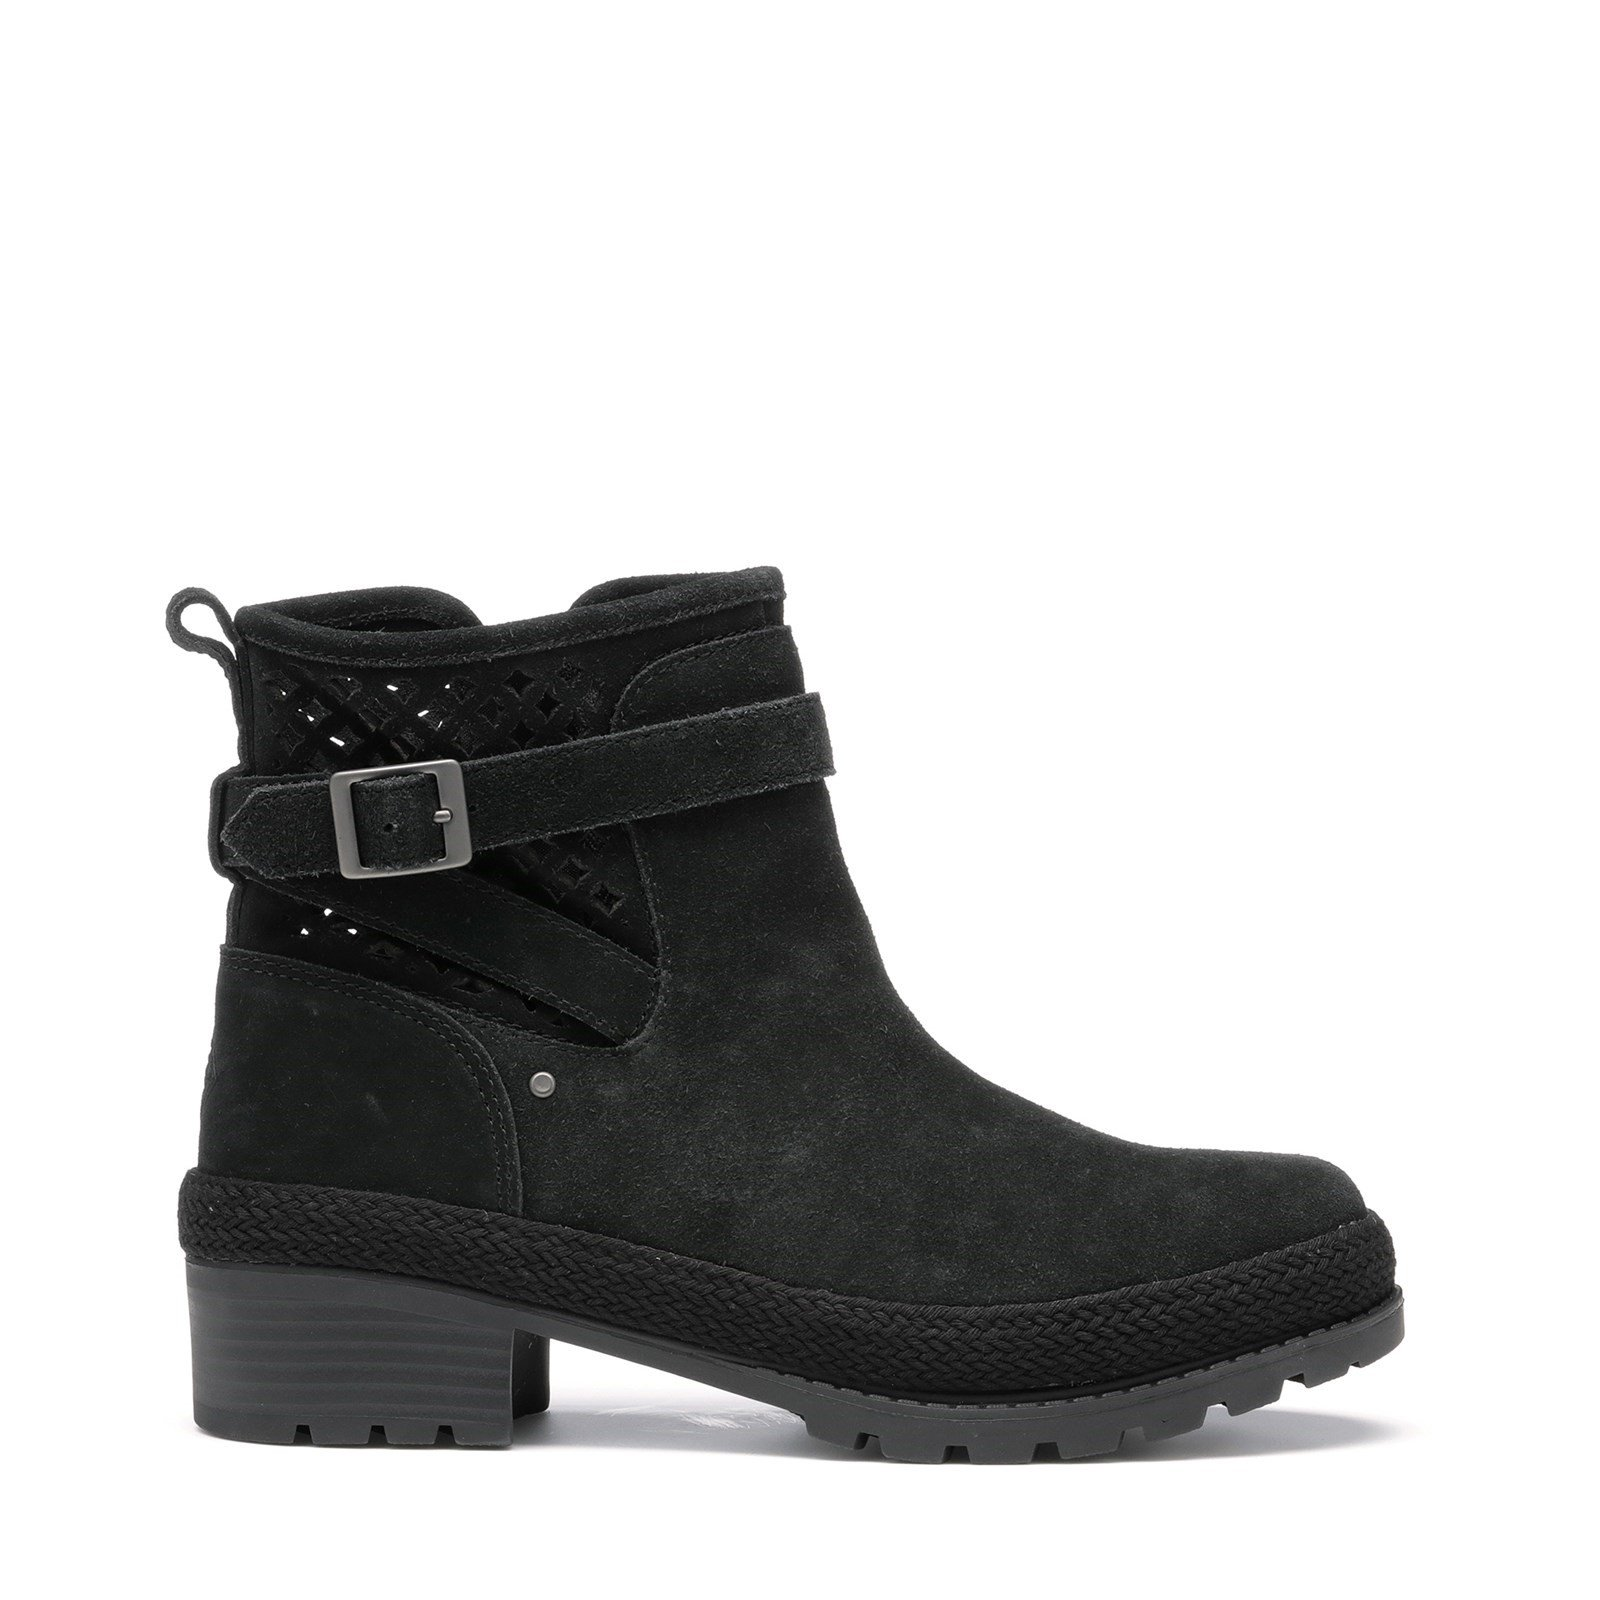 Muck Boots Women's Liberty Perforated Leather Boots Various Colours 31814 - Black 7